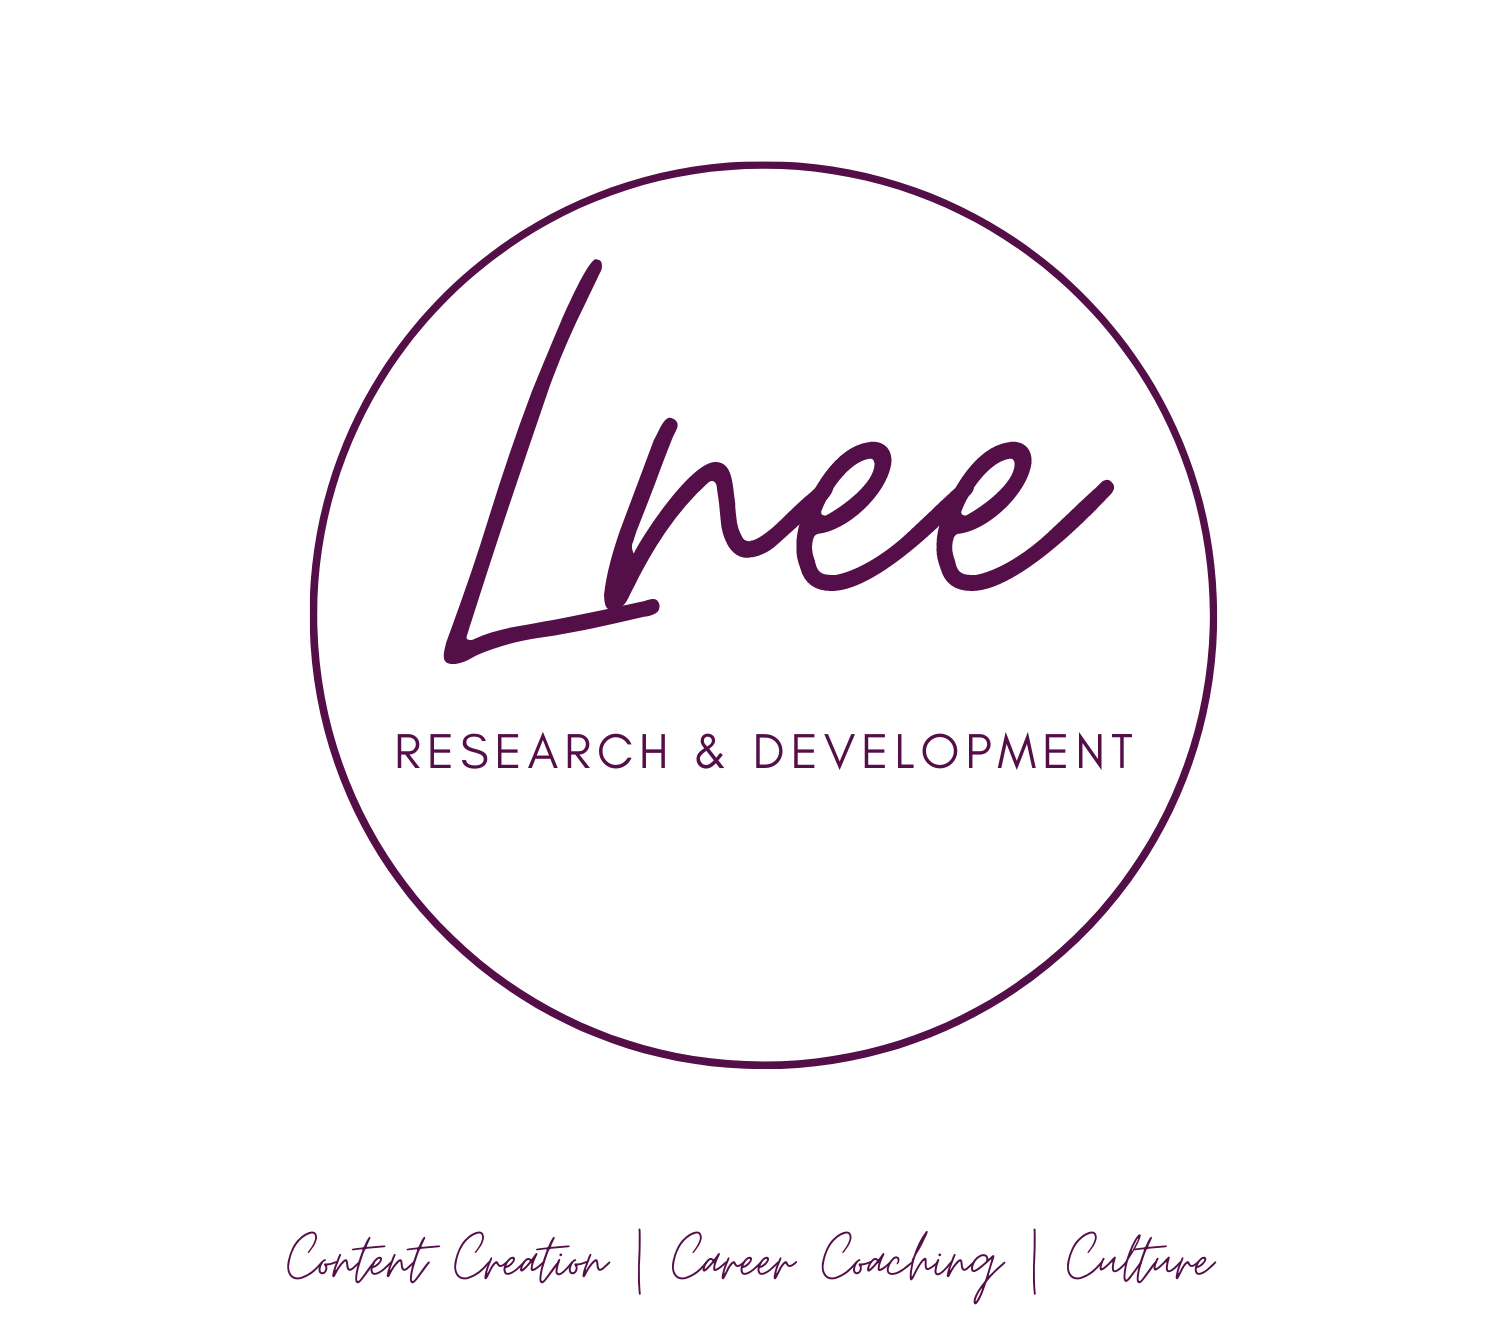 Lnee Research & Development